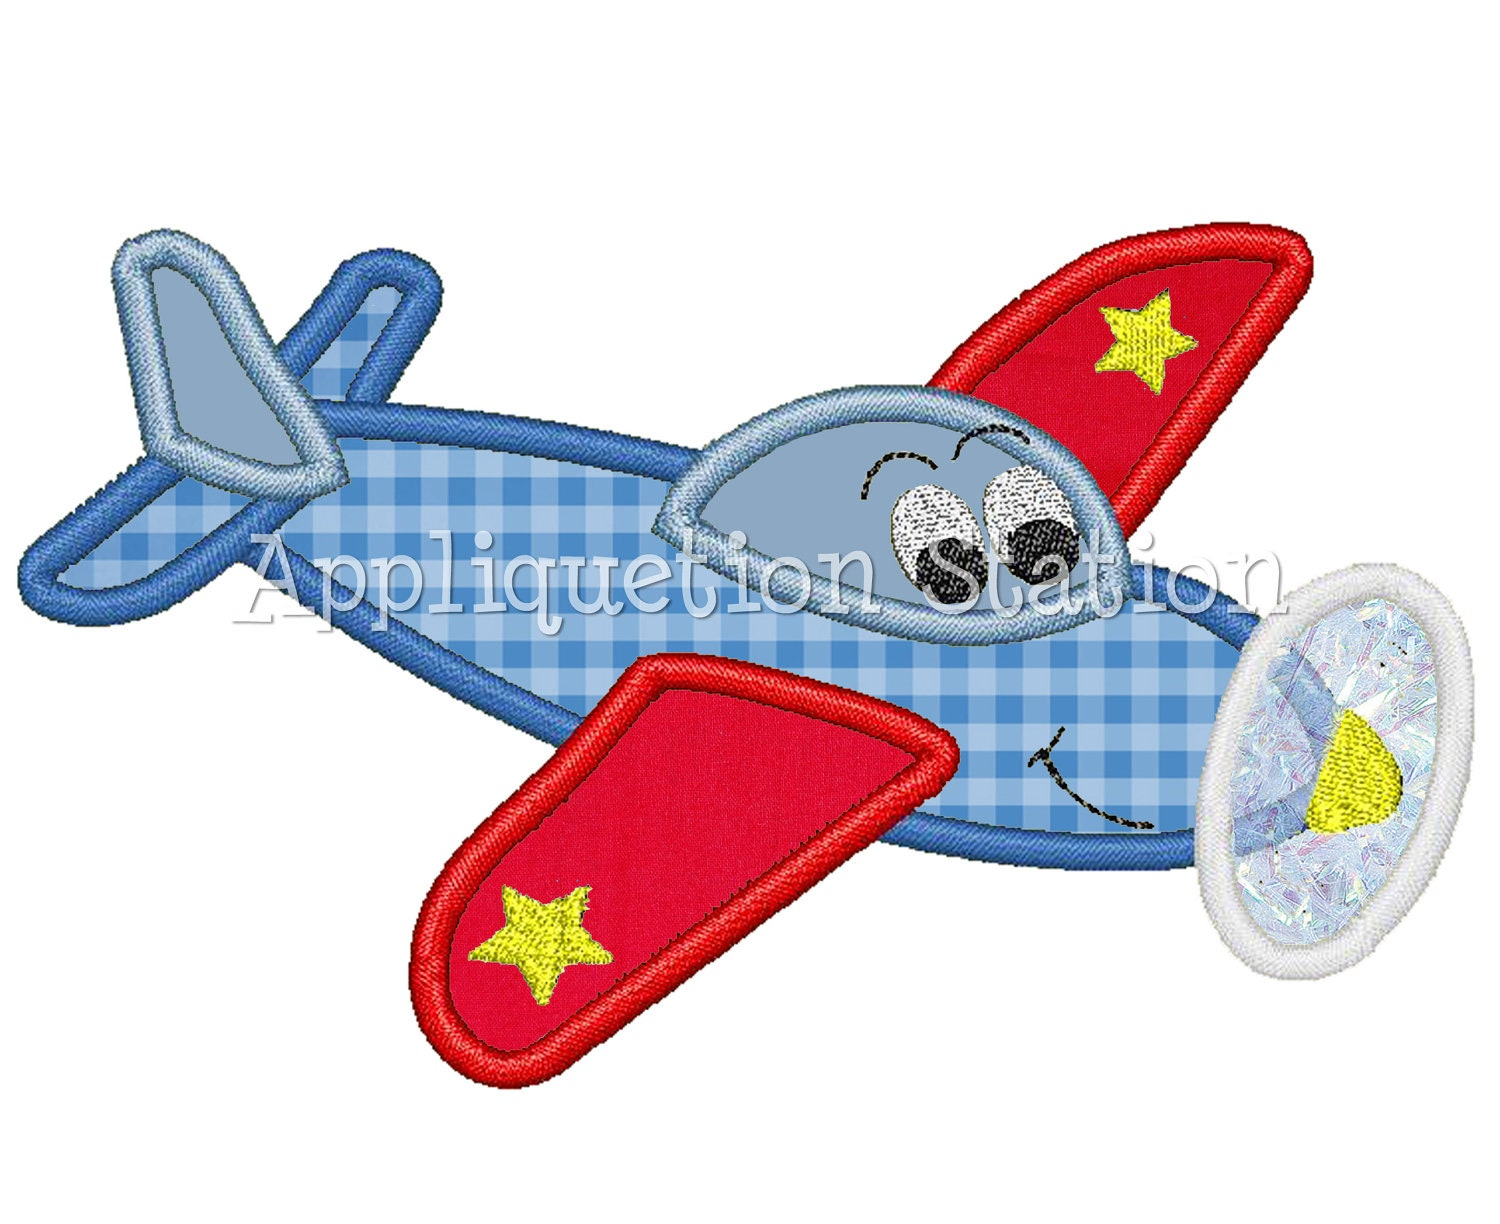 Airplane plane character applique machine embroidery for Embroidery office design version 9